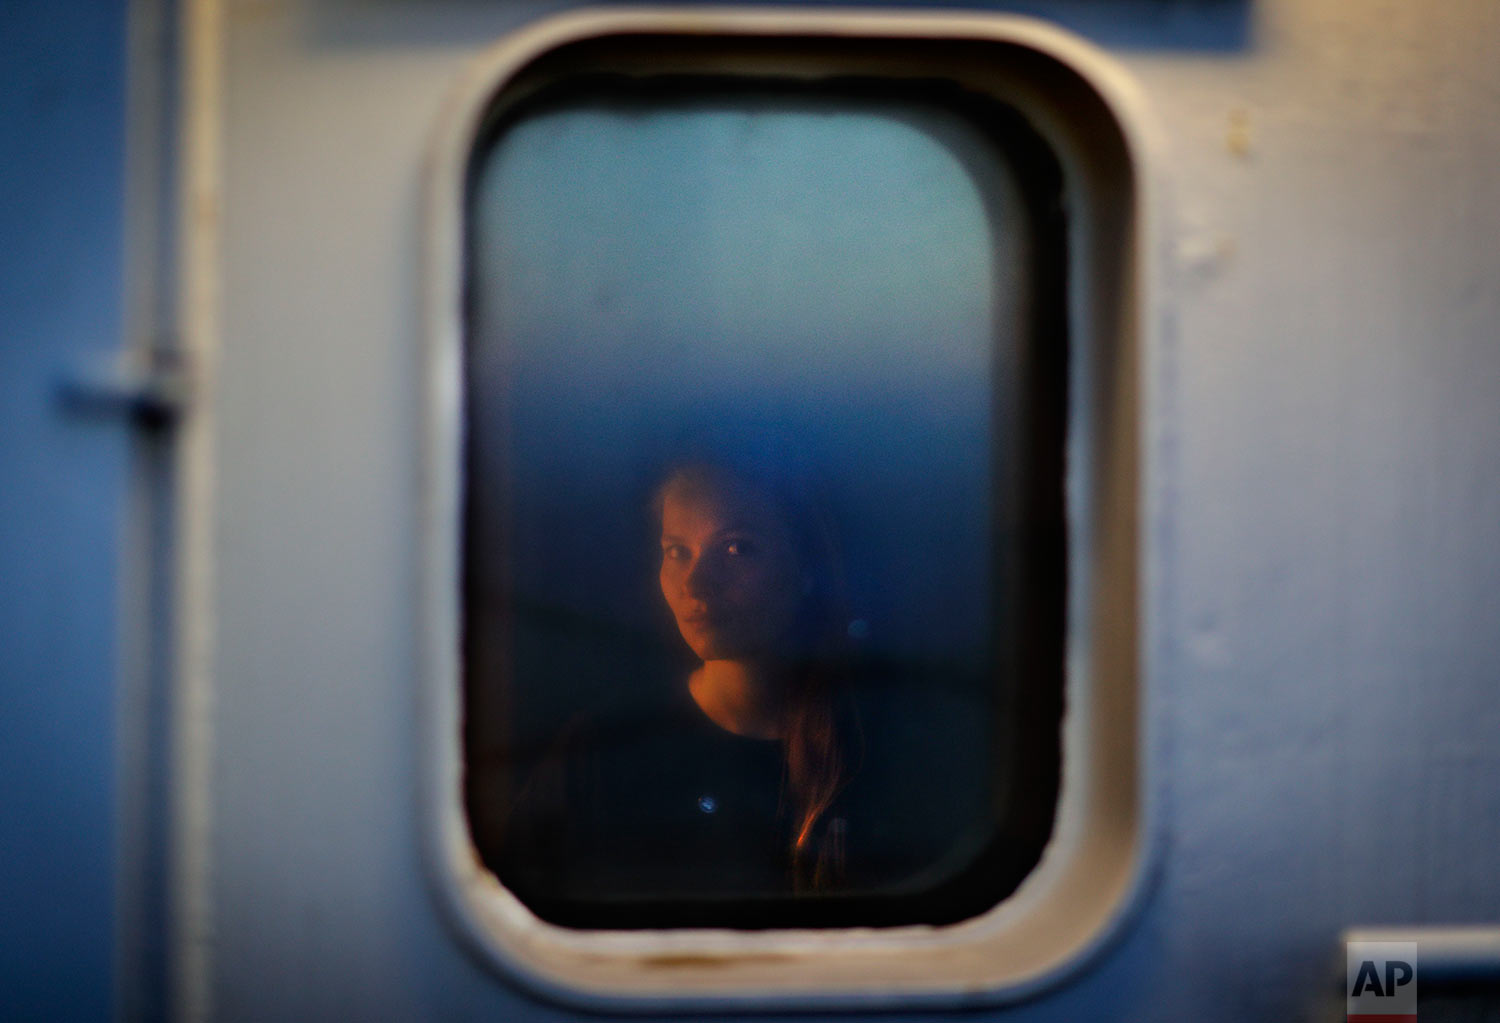 "Researcher Daria Gritsenko, 30, of the University of Helsinki, sits for a portrait in her cabin aboard the Finnish icebreaker MSV Nordica as the ship sails north in the Bering Sea toward the Arctic, Thursday, July 13, 2017. She is hoping to learn more about the Northwest Passage to aid her work in energy development in the Arctic. Although this will be her first transit through the passage, she has been to Svalbard, a Norwegian archipelago in the Arctic. ""I love the Arctic. It's such a powerful nature that I felt so little in comparison,"" she said. ""It makes you realize how much of dust you are on this planet. It's very intimidating but I felt very calm inside."" (AP Photo/David Goldman)"